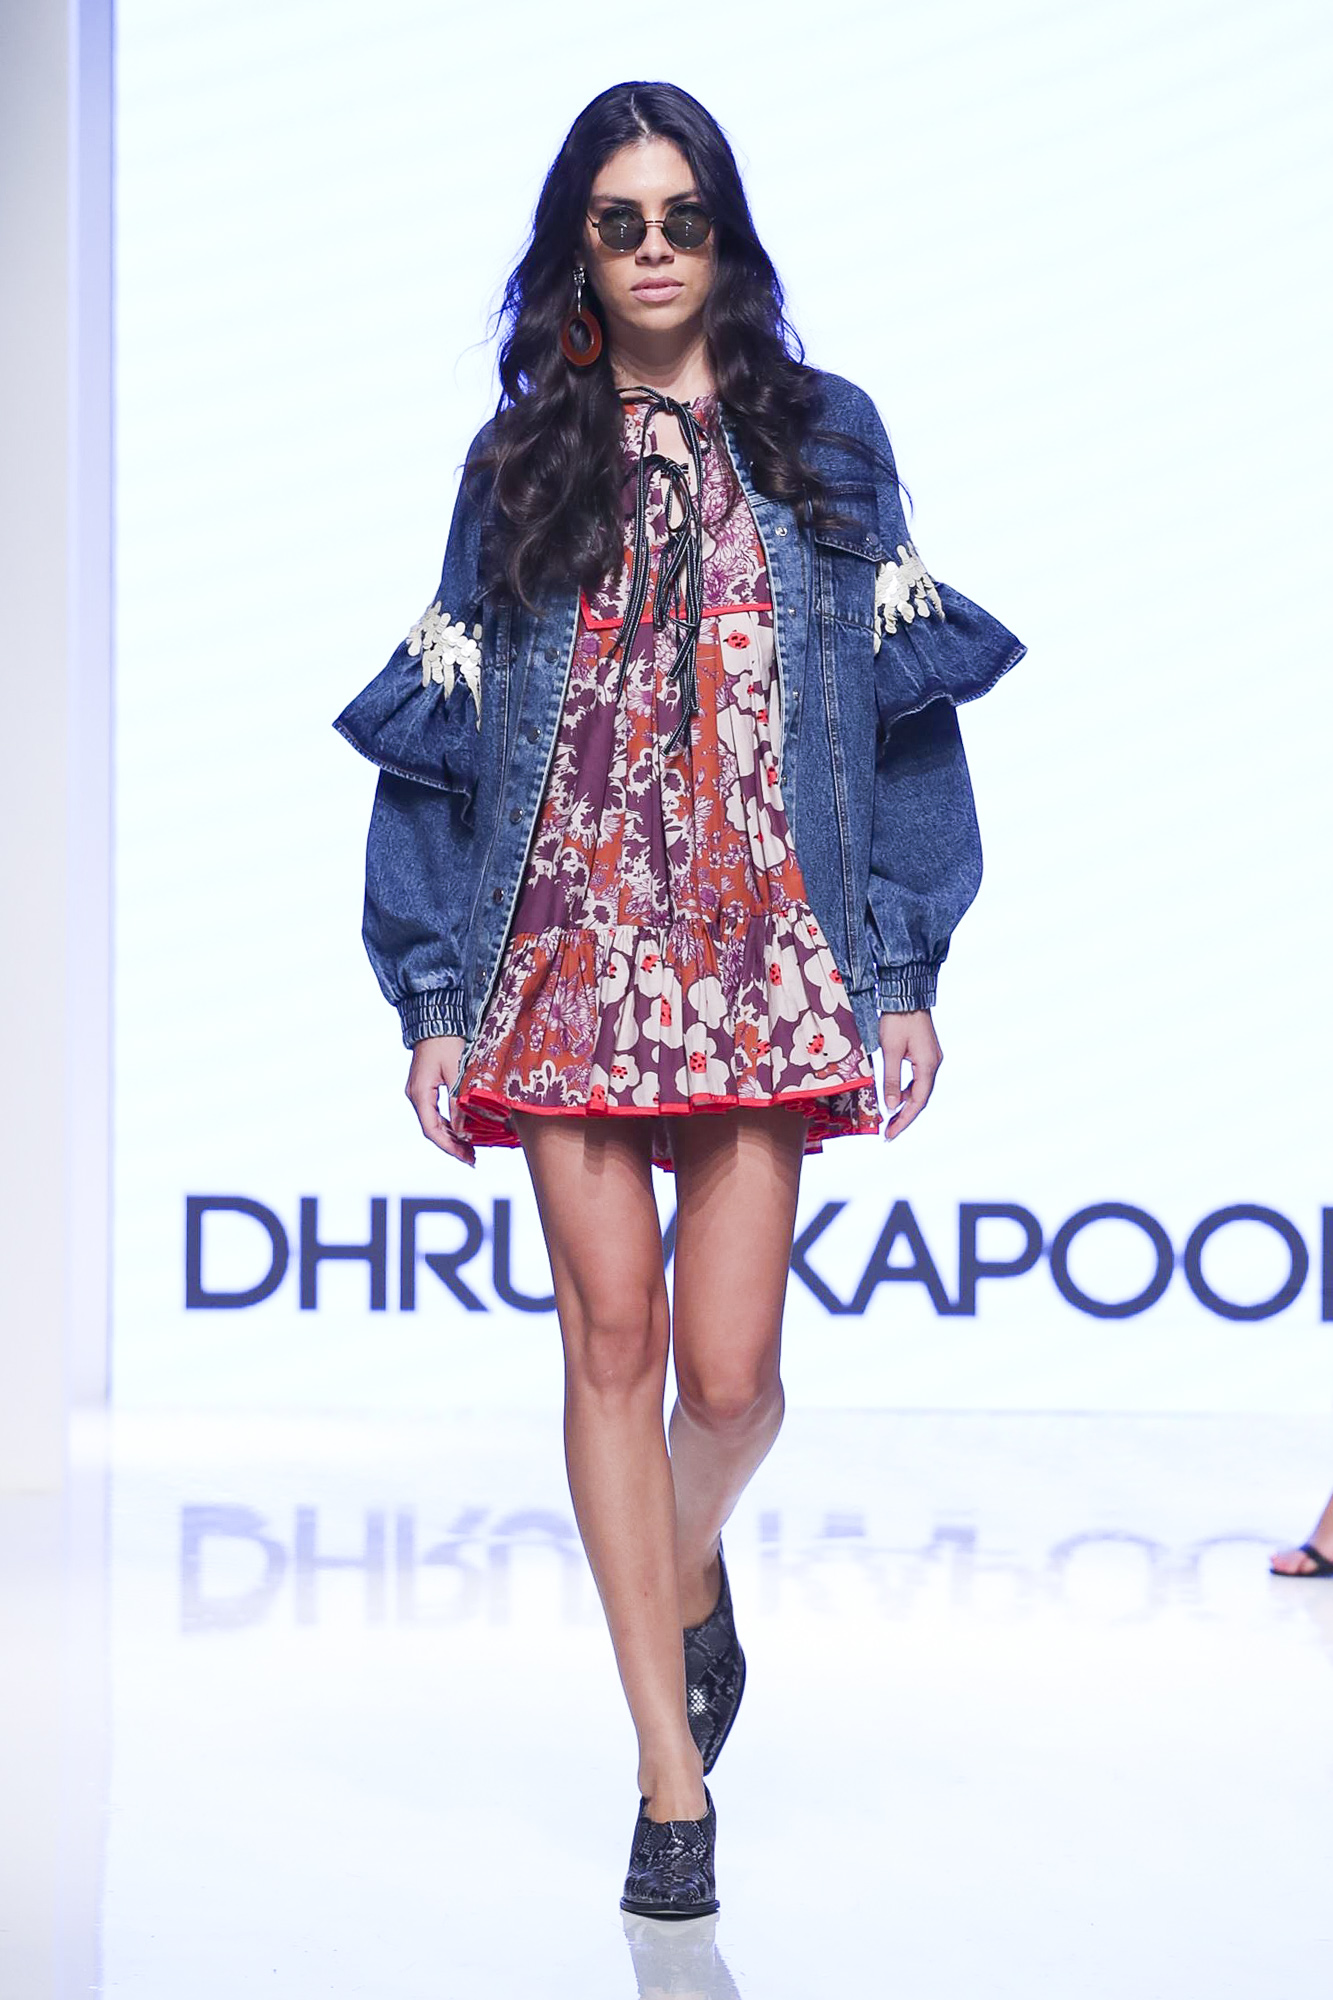 Dhruv Kapoor fashion show, Arab Fashion Week collection Spring Summer 2020 in Dubai